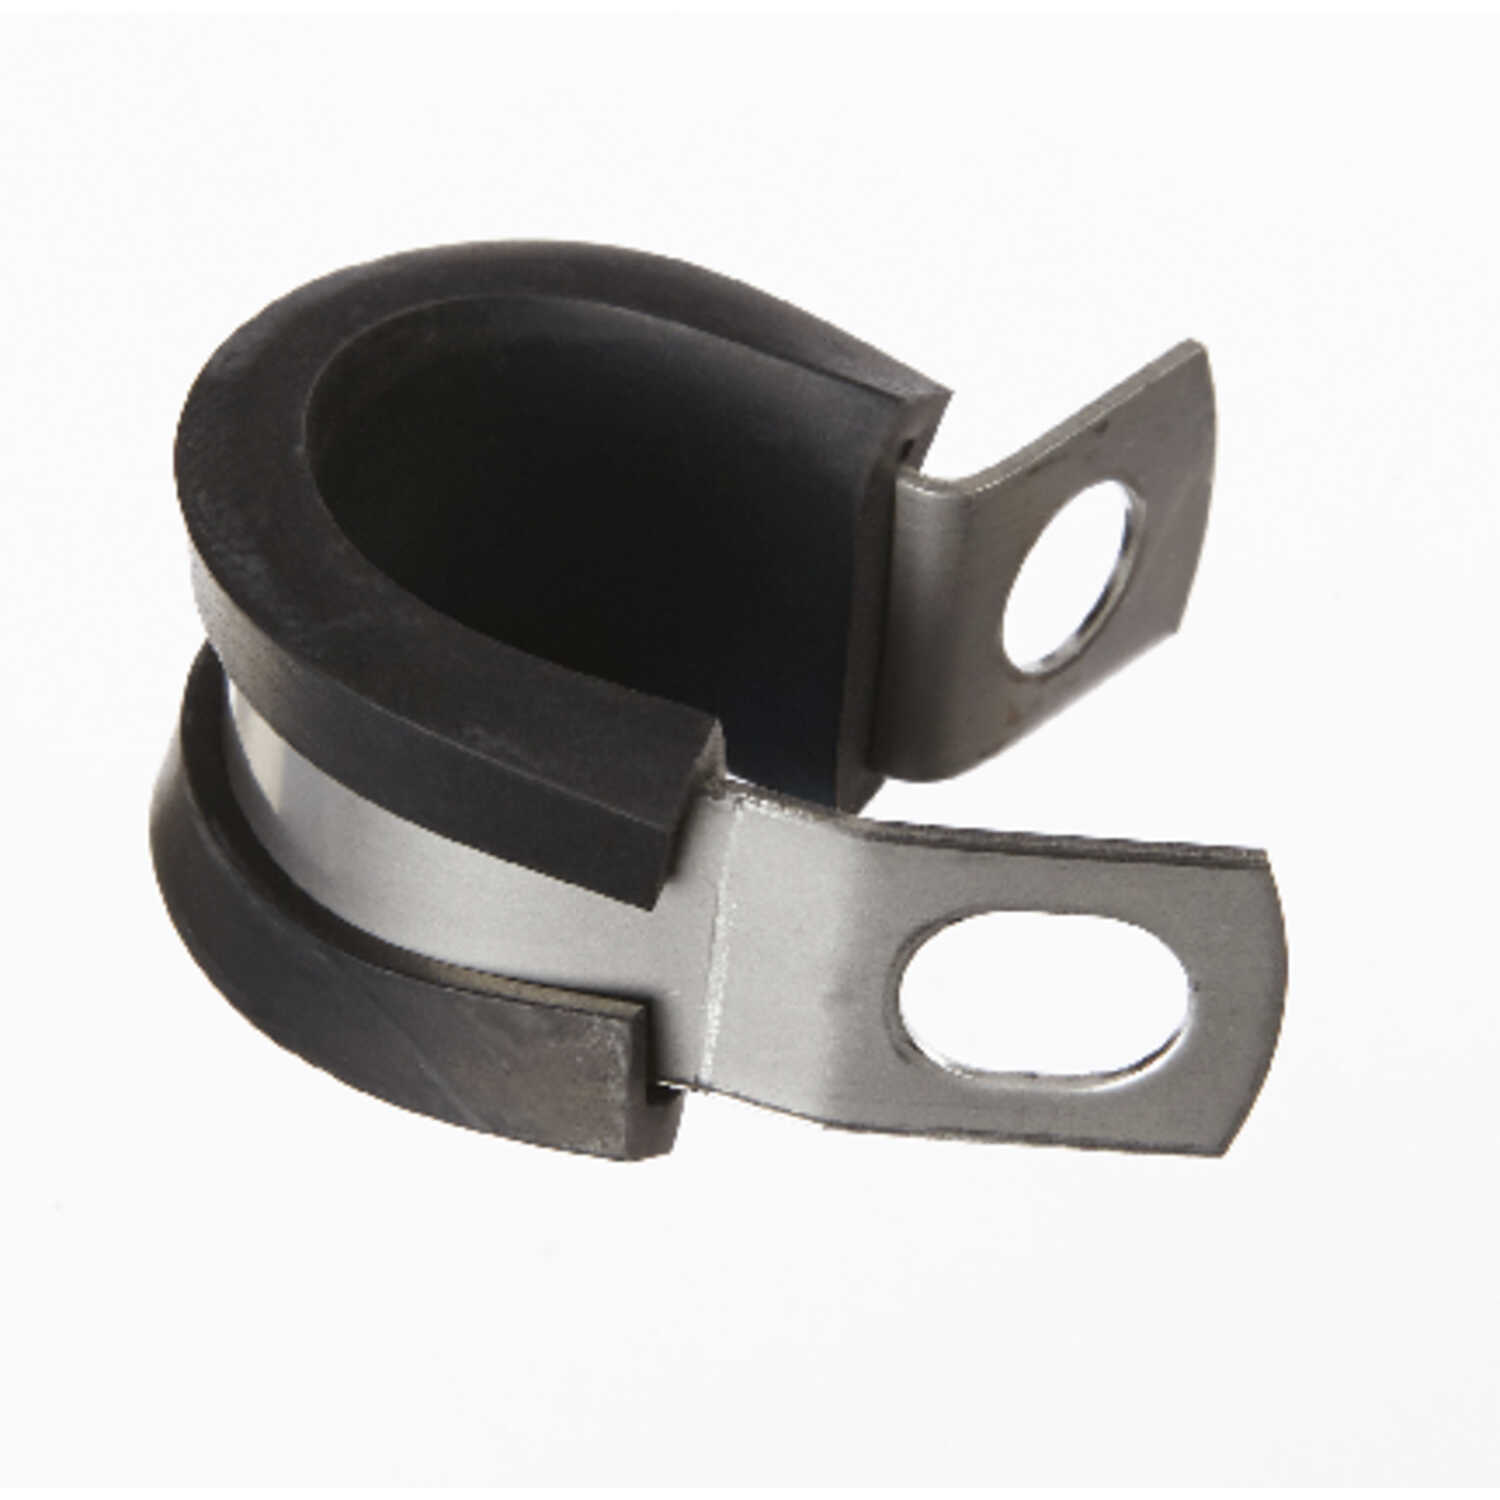 Jandorf  1/2 in. Dia. Stainless Steel  Cushion Clamp  2 pk